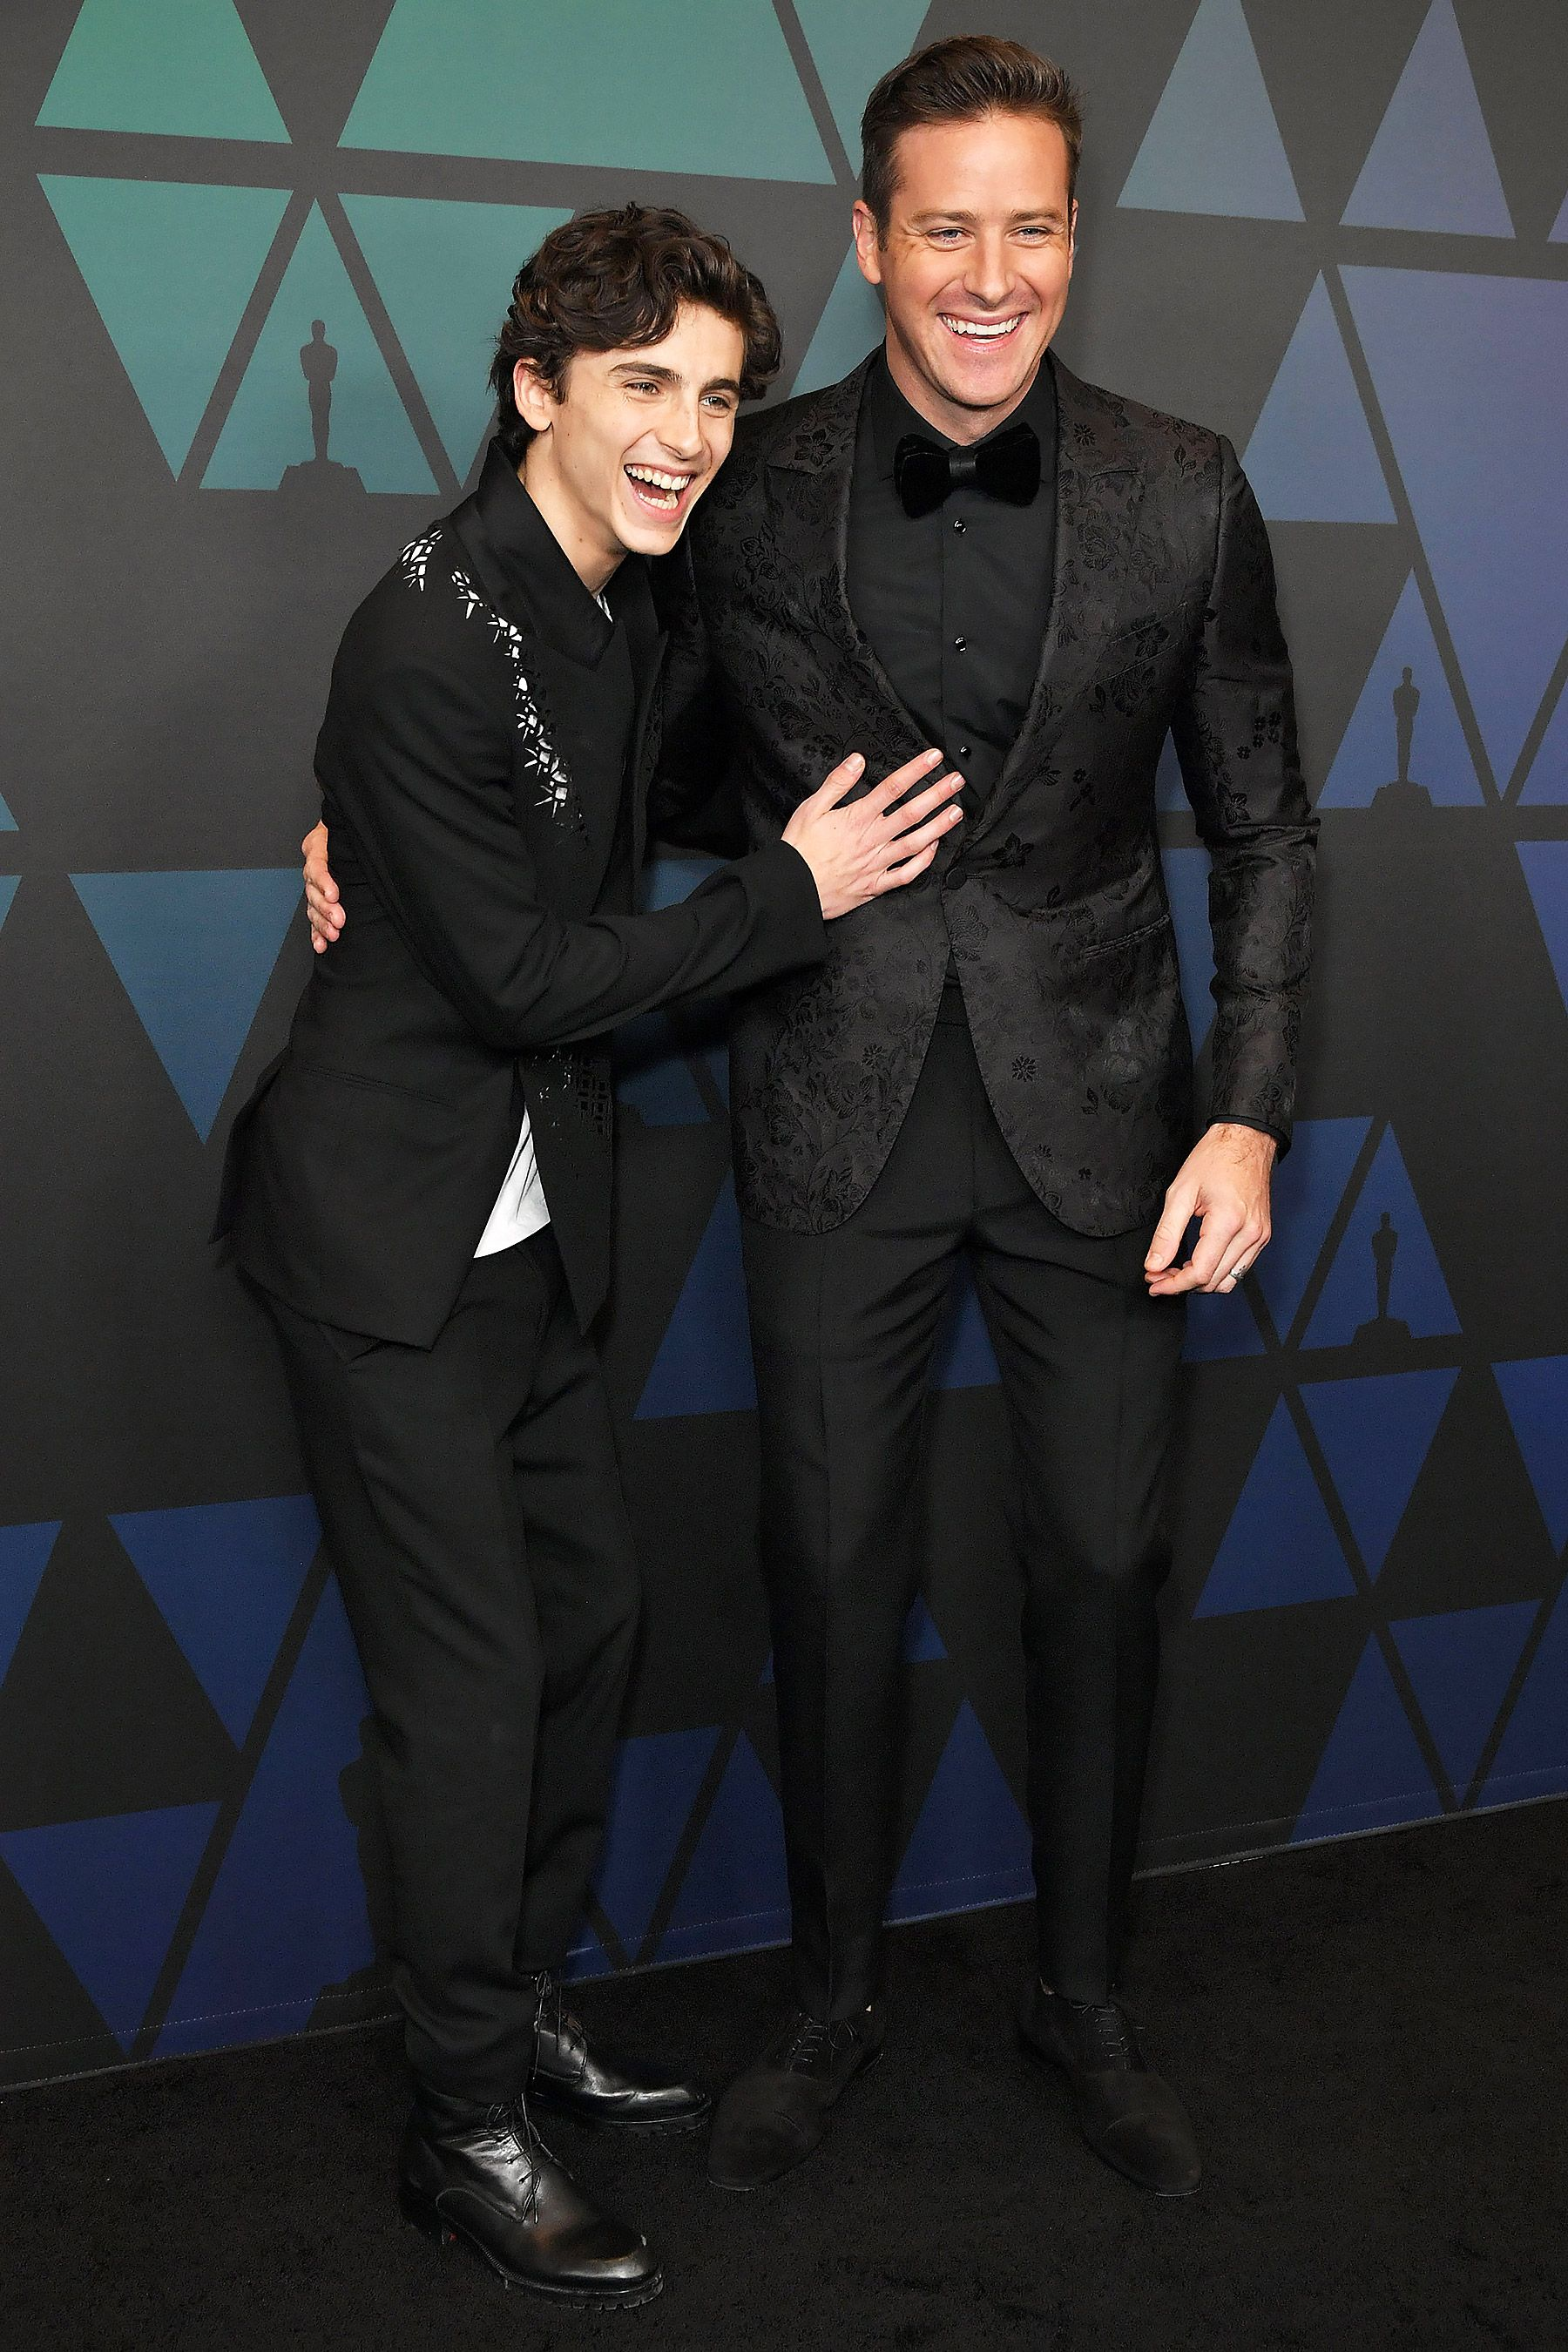 98dac305a94 Armie Hammer and Timothée Chalamet Have Adorable Call Me By Your Name  Reunion at Governor s Ball